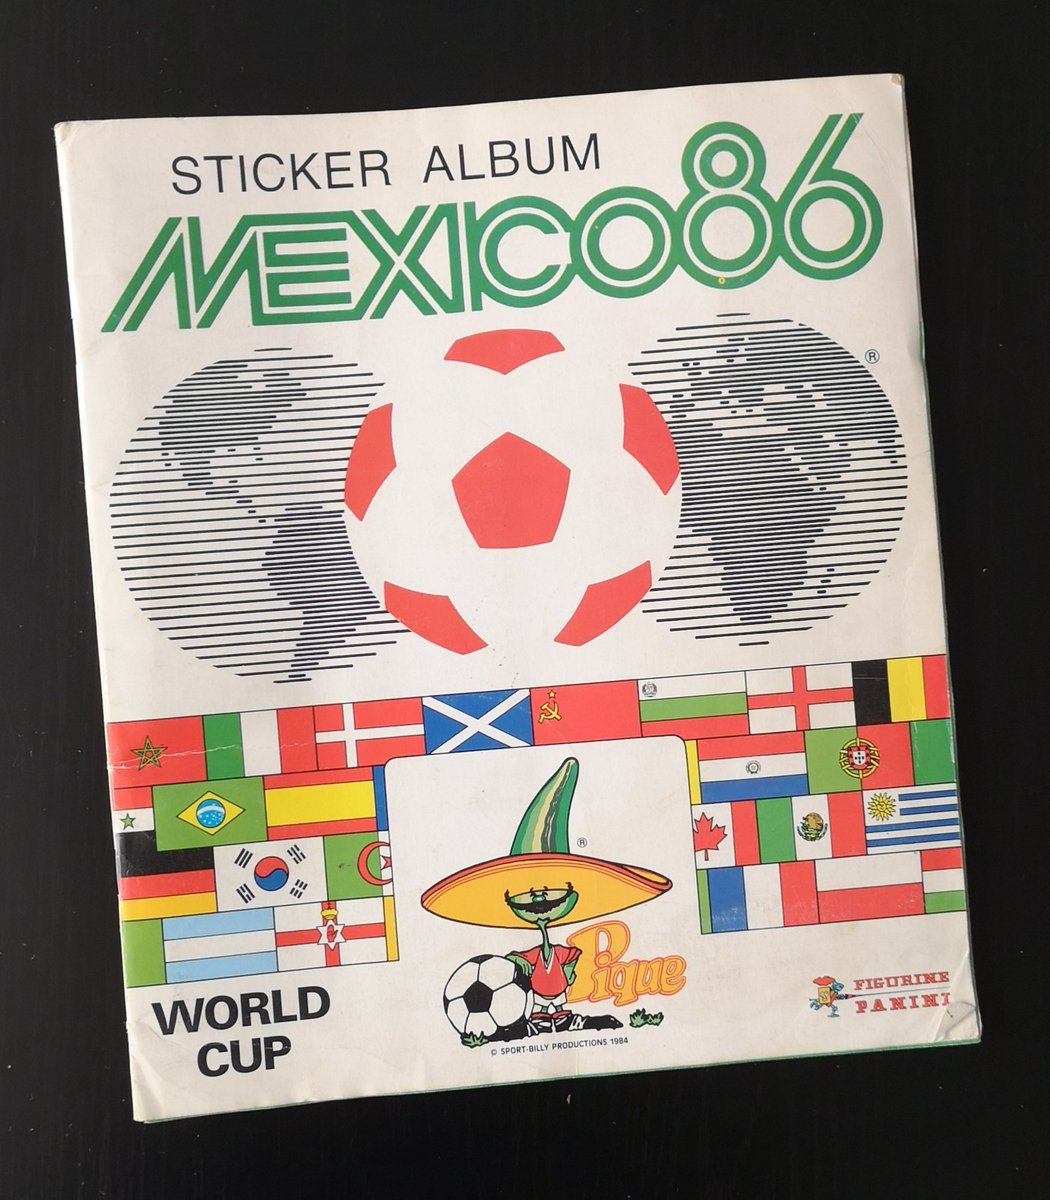 Mexico 1986 World Cup Sticker Album. Fully Completed #Maradona #Mexico86 #WorldCup